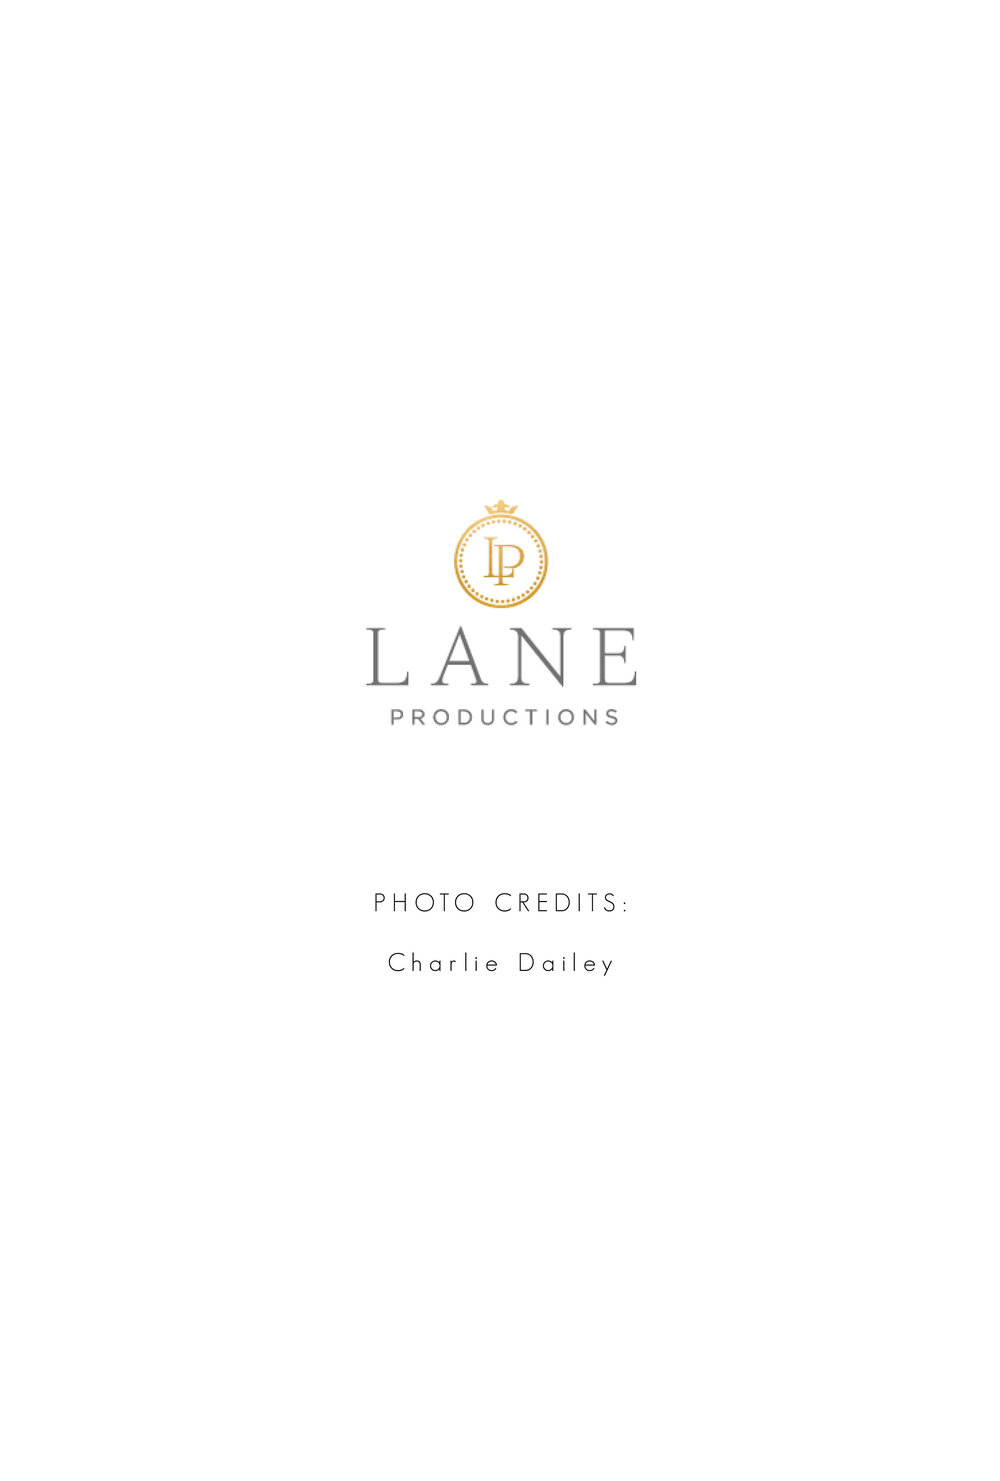 Charlie+Dailey+LP+Photo+Credits+Billie+Media+Mallorca+Photographer+Lane+Productions+.jpg